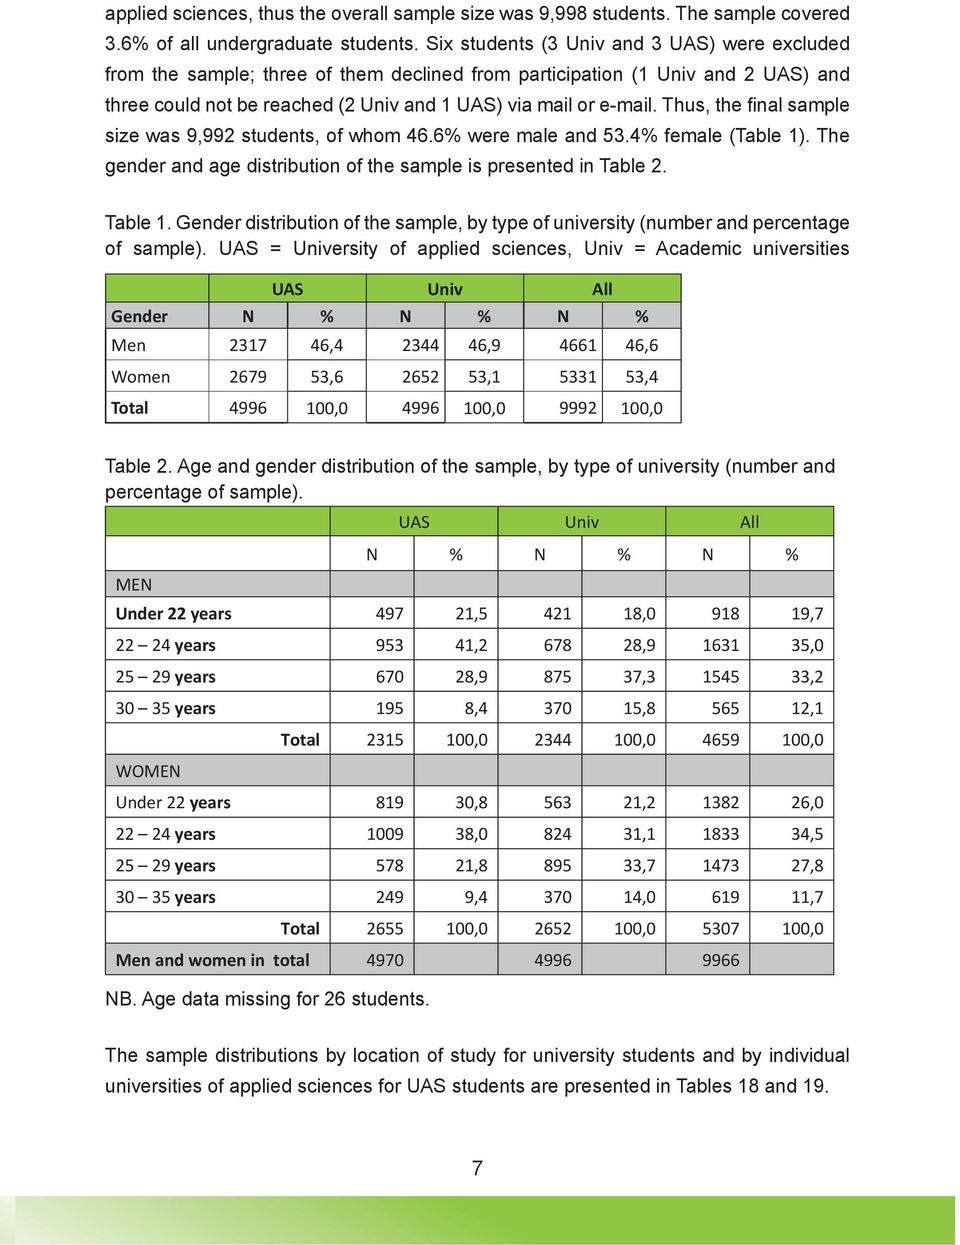 Thus, the fi nal sample size was 9,992 students, of whom 46.6% were male and 53.4% female (Table 1). The gender and age distribution of the sample is presented in Table 2. Table 1.